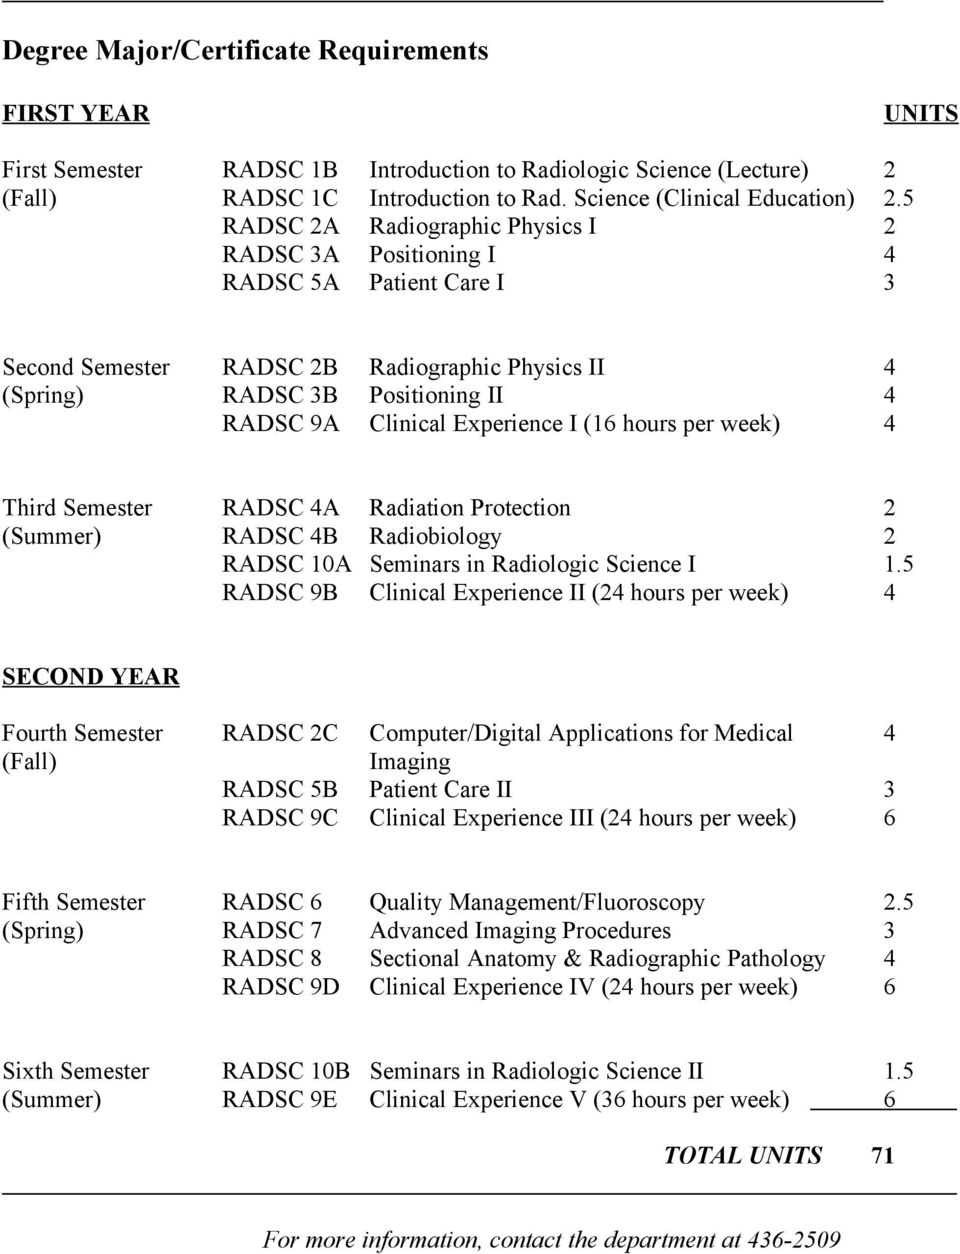 Experience I (16 hours per week) 4 Third Semester RADSC 4A Radiation Protection 2 (Summer) RADSC 4B Radiobiology 2 RADSC 10A Seminars in Radiologic Science I 1.